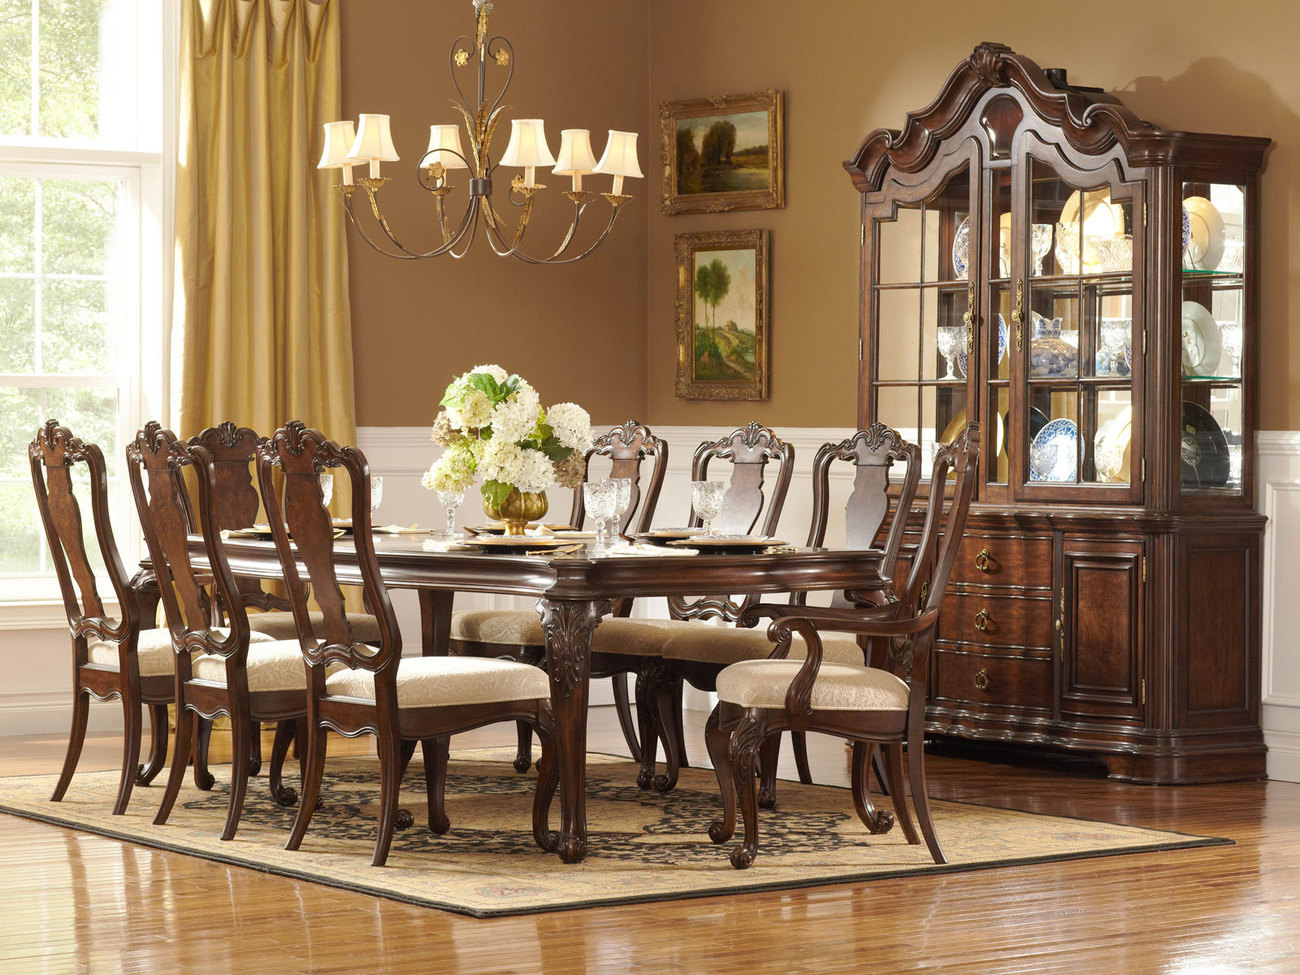 Traditional Dining Room Design Timeless Traditional Dining Room Designs Interior Vogue